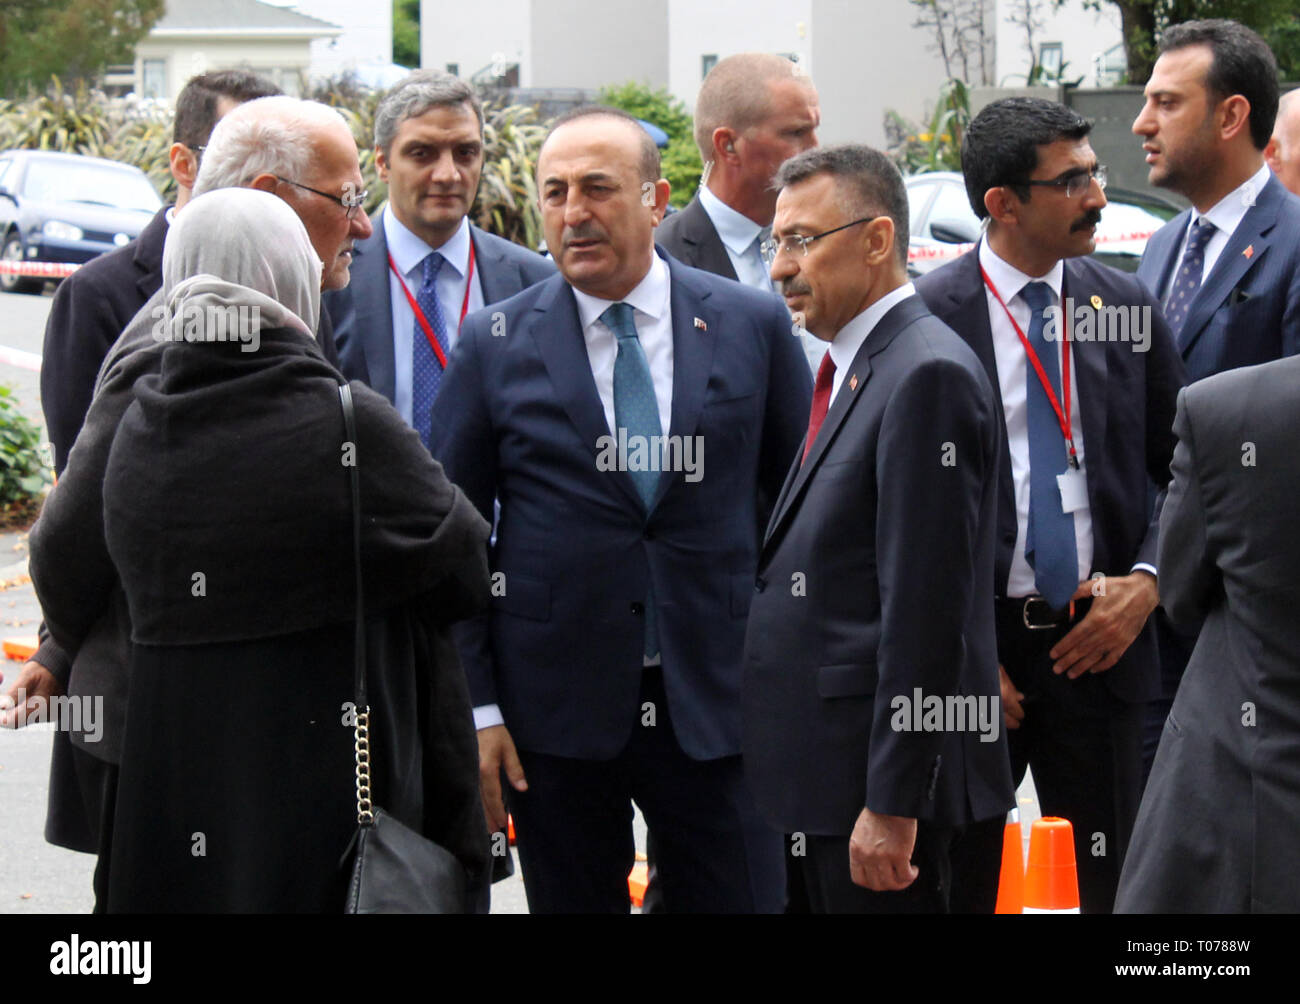 Christchurch, New Zealand. 18th Mar, 2019. Mevlüt Cavusoglu (centre l), Foreign Minister of Turkey, and Fuat Oktay (centre r), Vice-President of Turkey, visit a mosque to commemorate the victims of the attack. The massacre with at least 50 fatalities in two mosques in Christchurch, New Zealand, is apparently the fault of a racist. Credit: Peter Godfrey/dpa/Alamy Live News - Stock Image